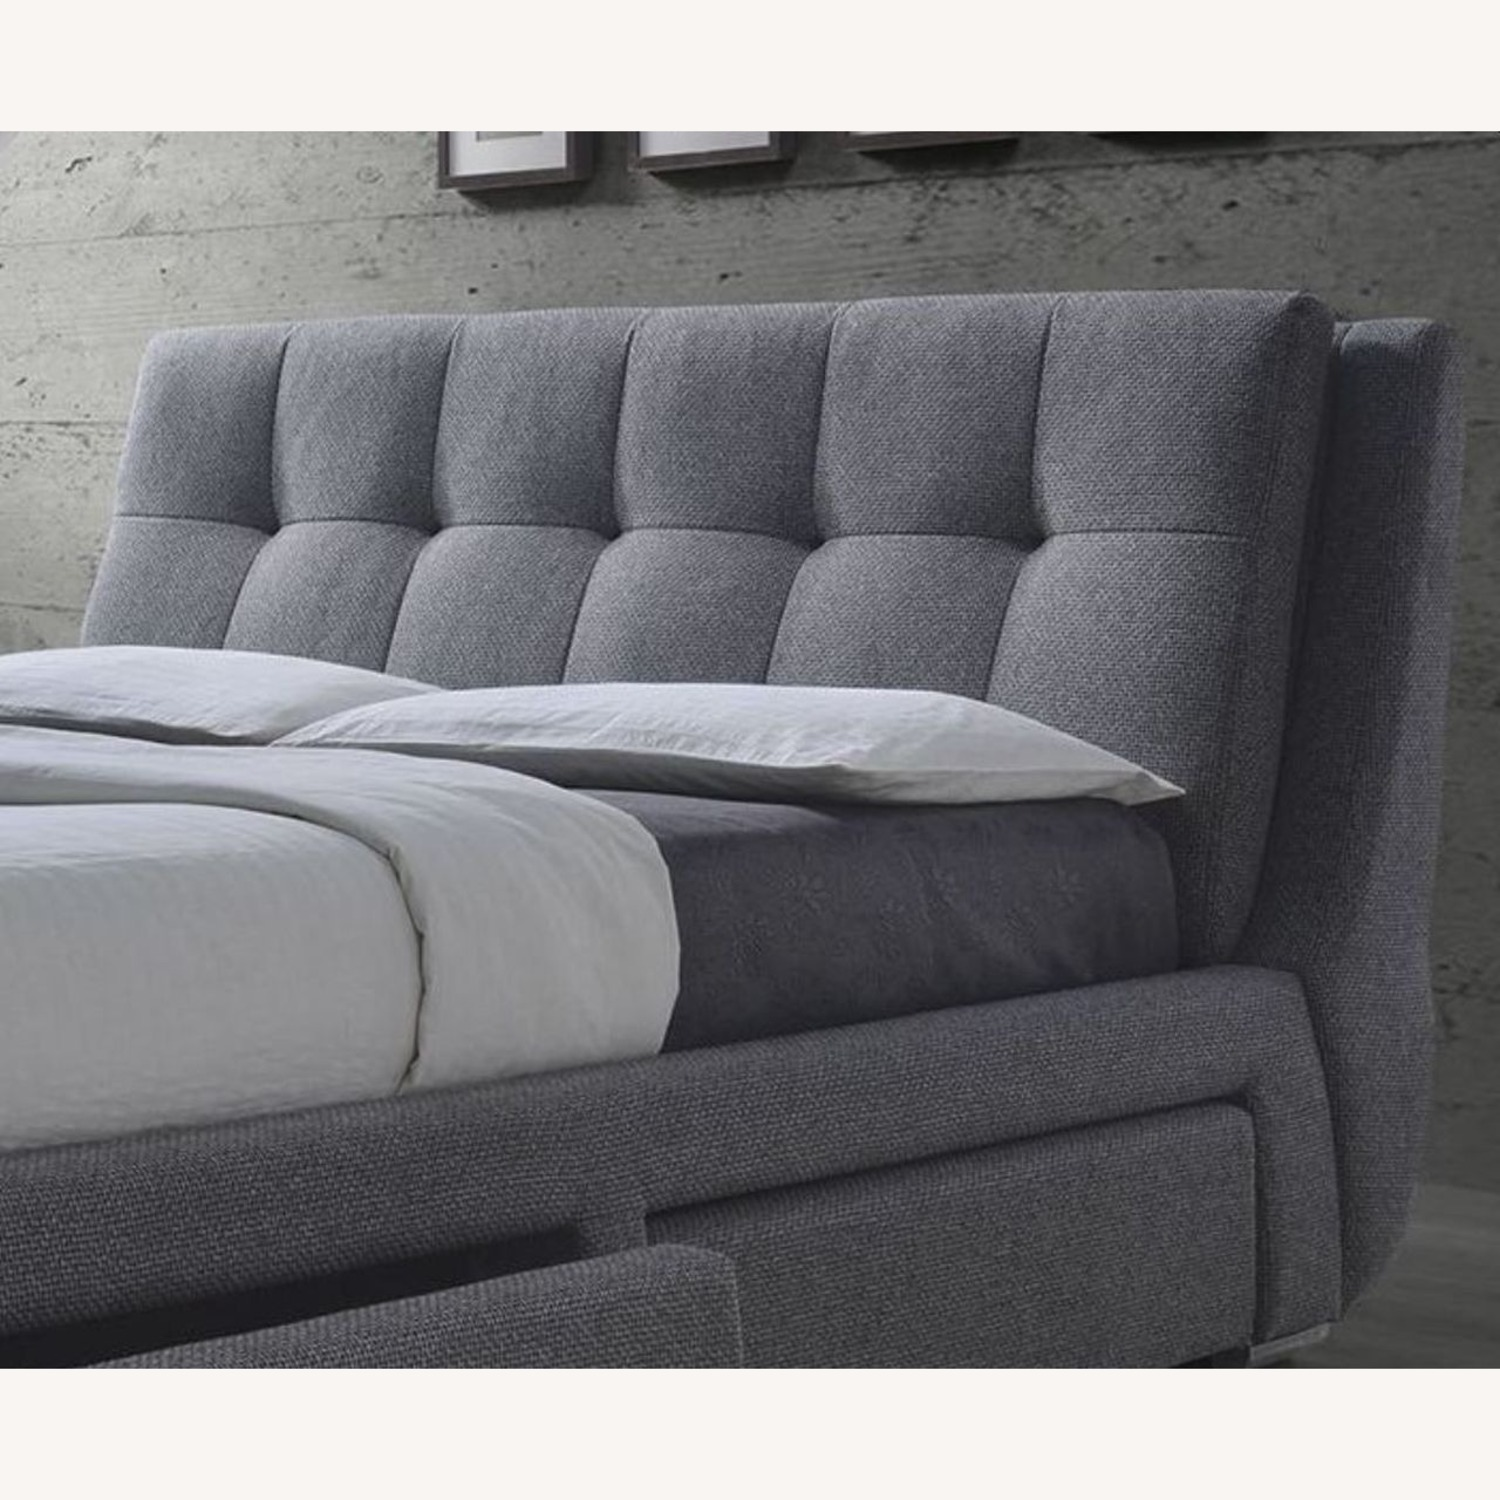 King Storage Bed W/ 4 Drawers In Soft Grey - image-1